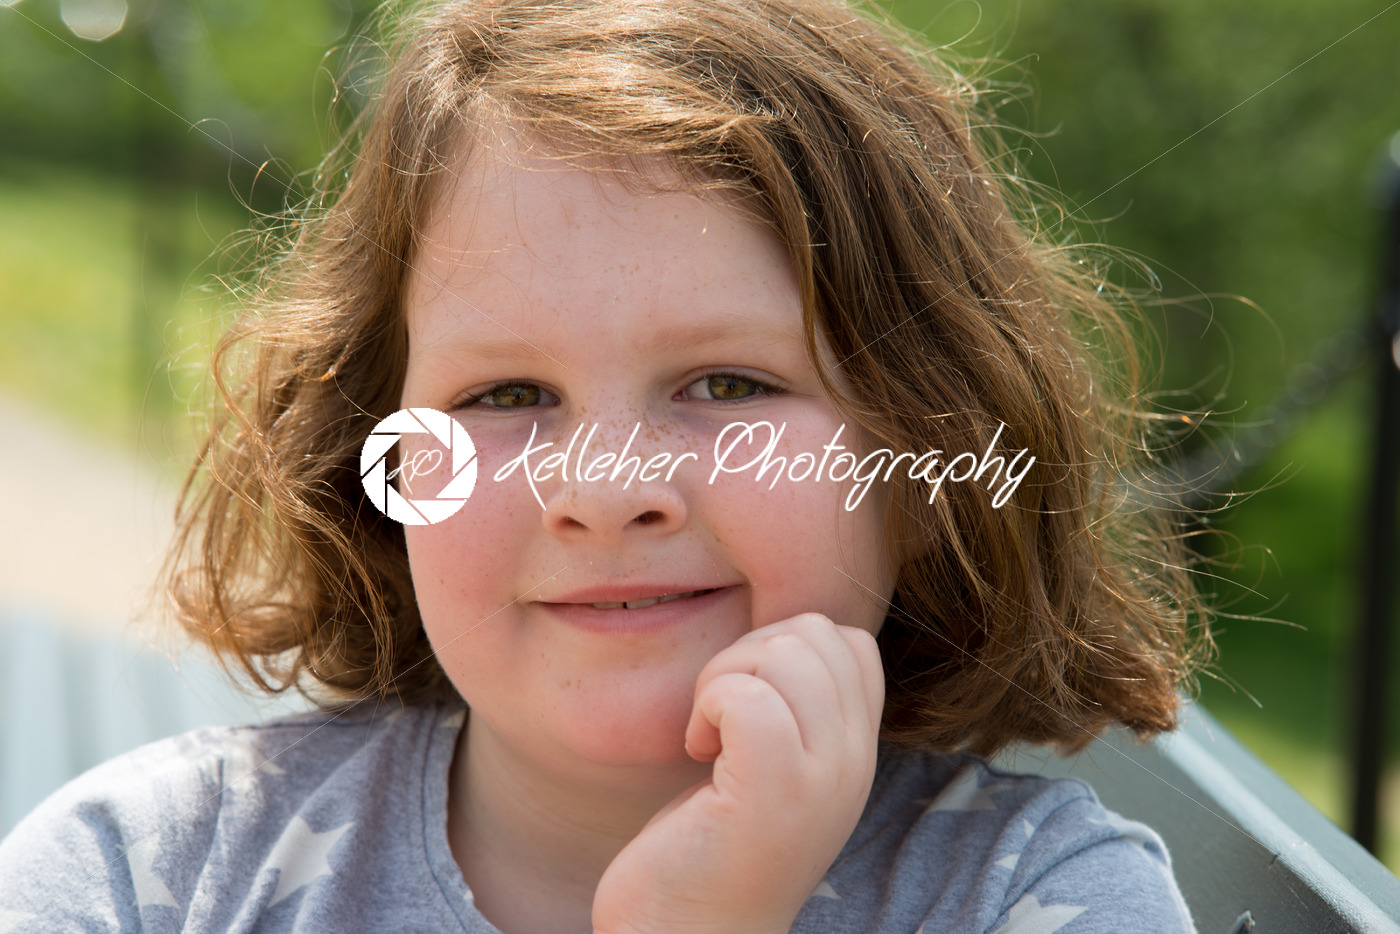 Close Portrait of Happy Young Girl Outside - Kelleher Photography Store